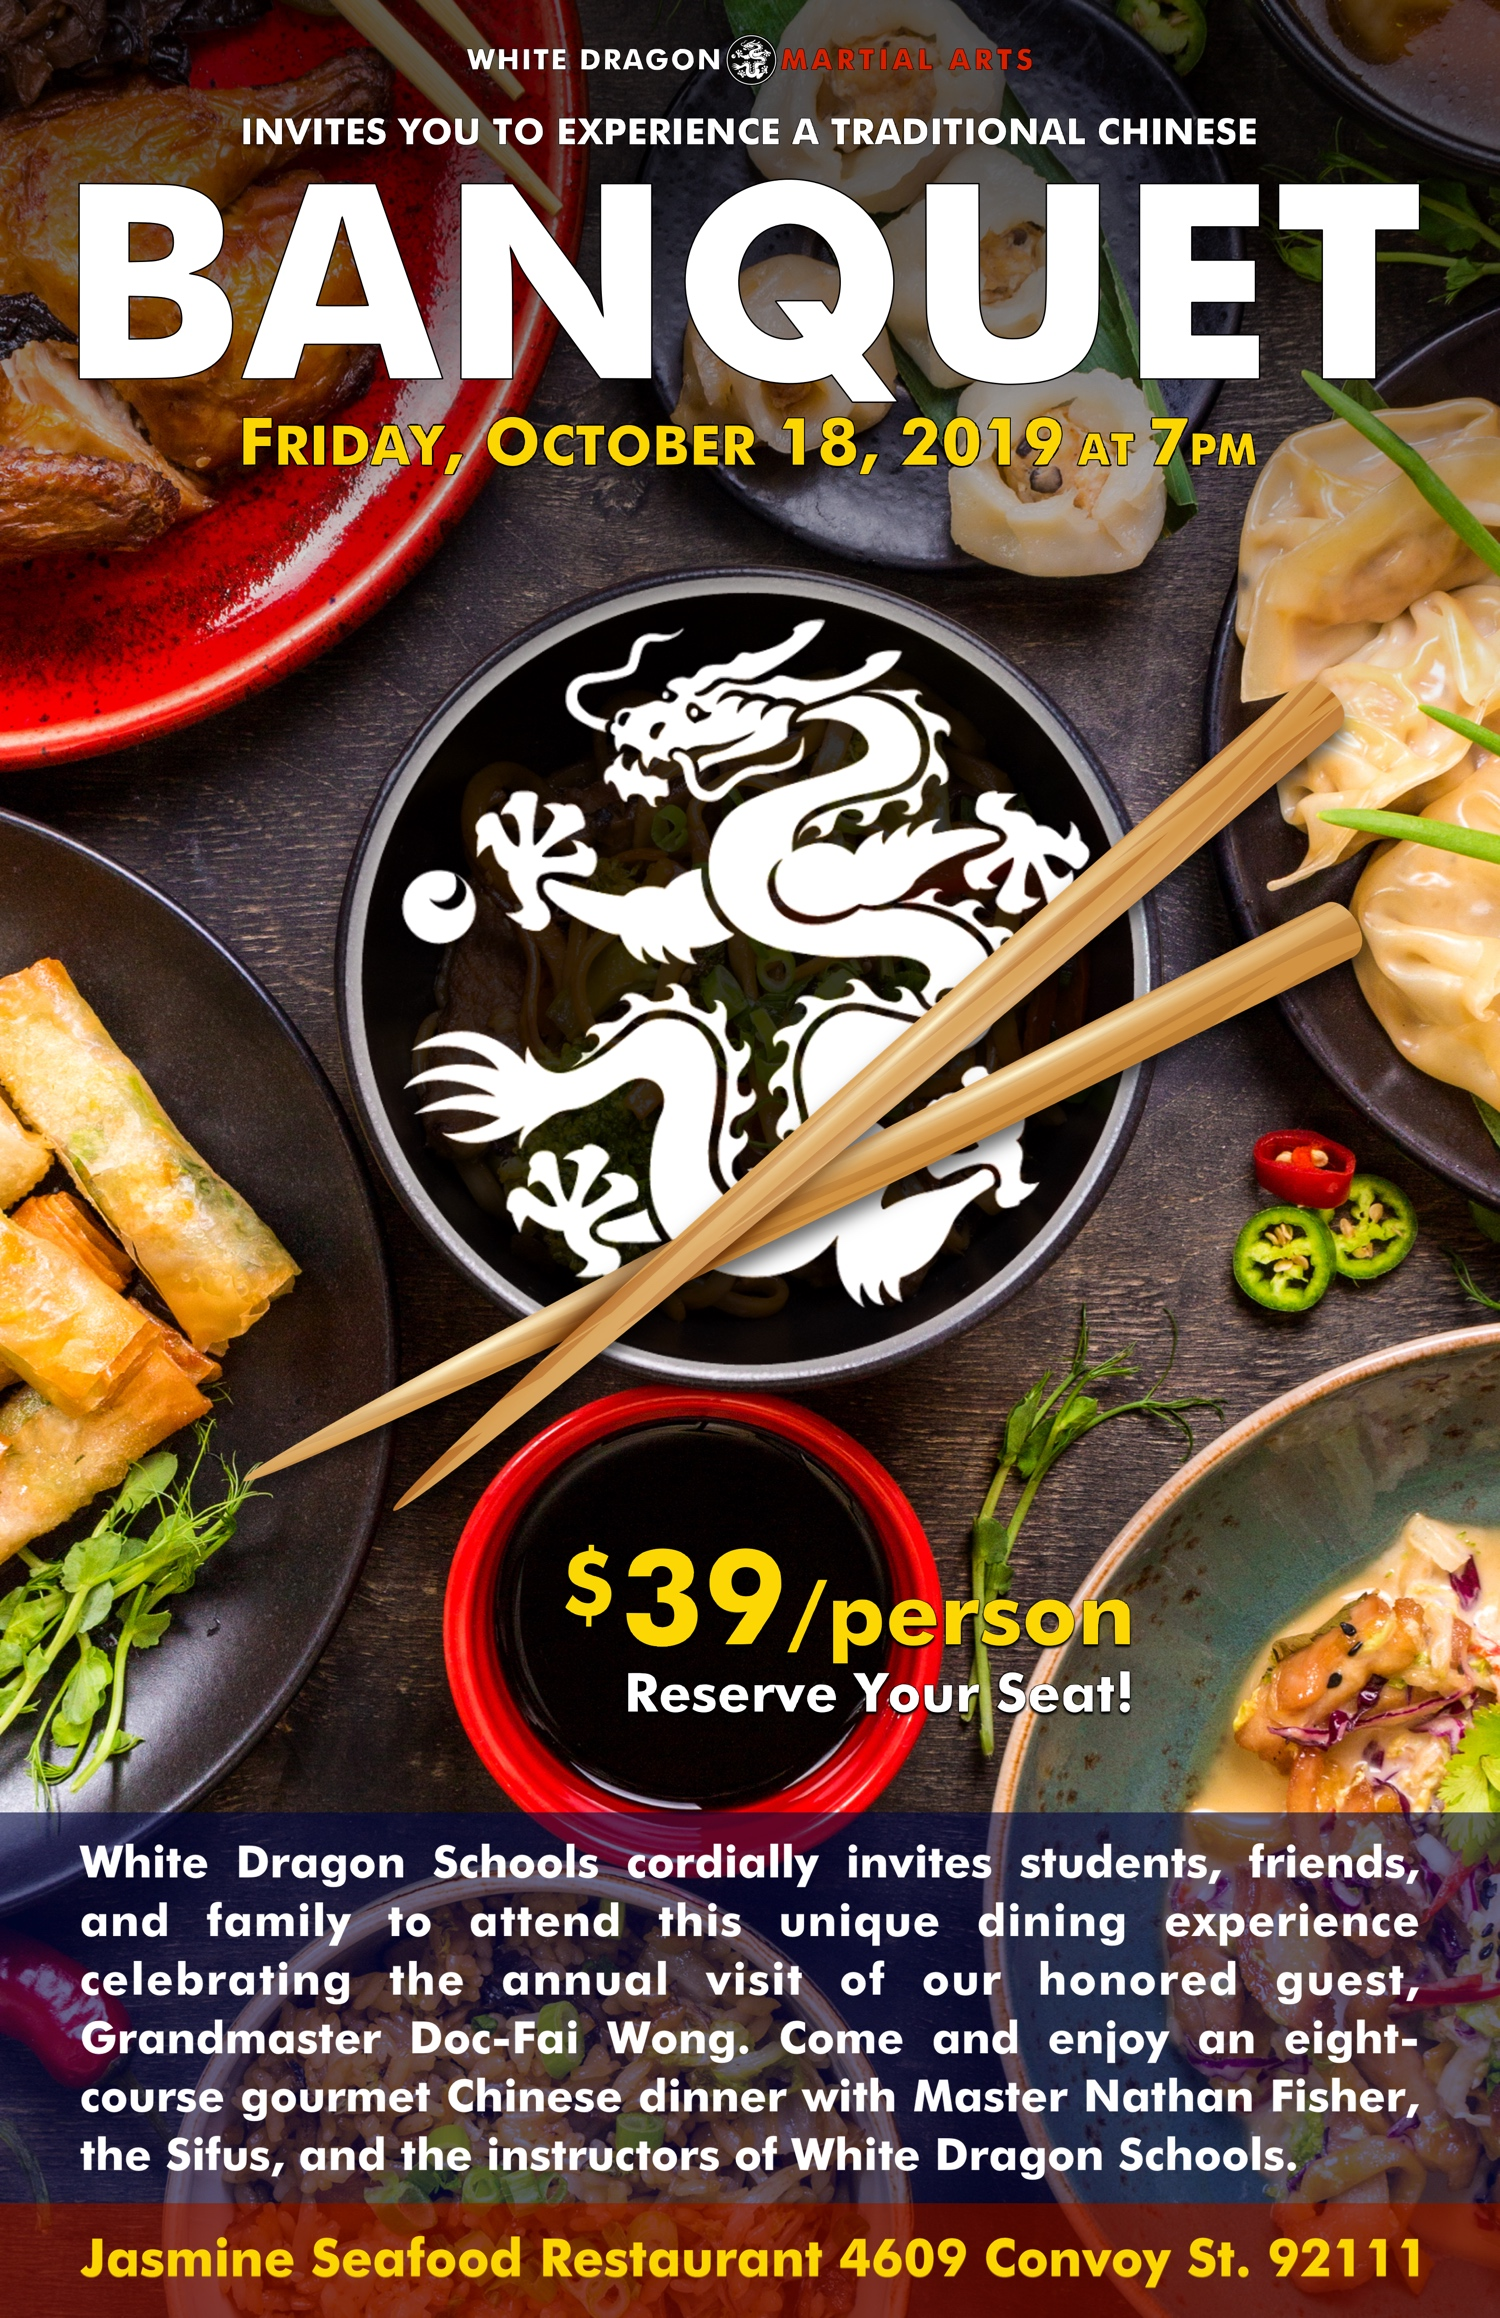 White Dragon Martial Arts Banquet 2019